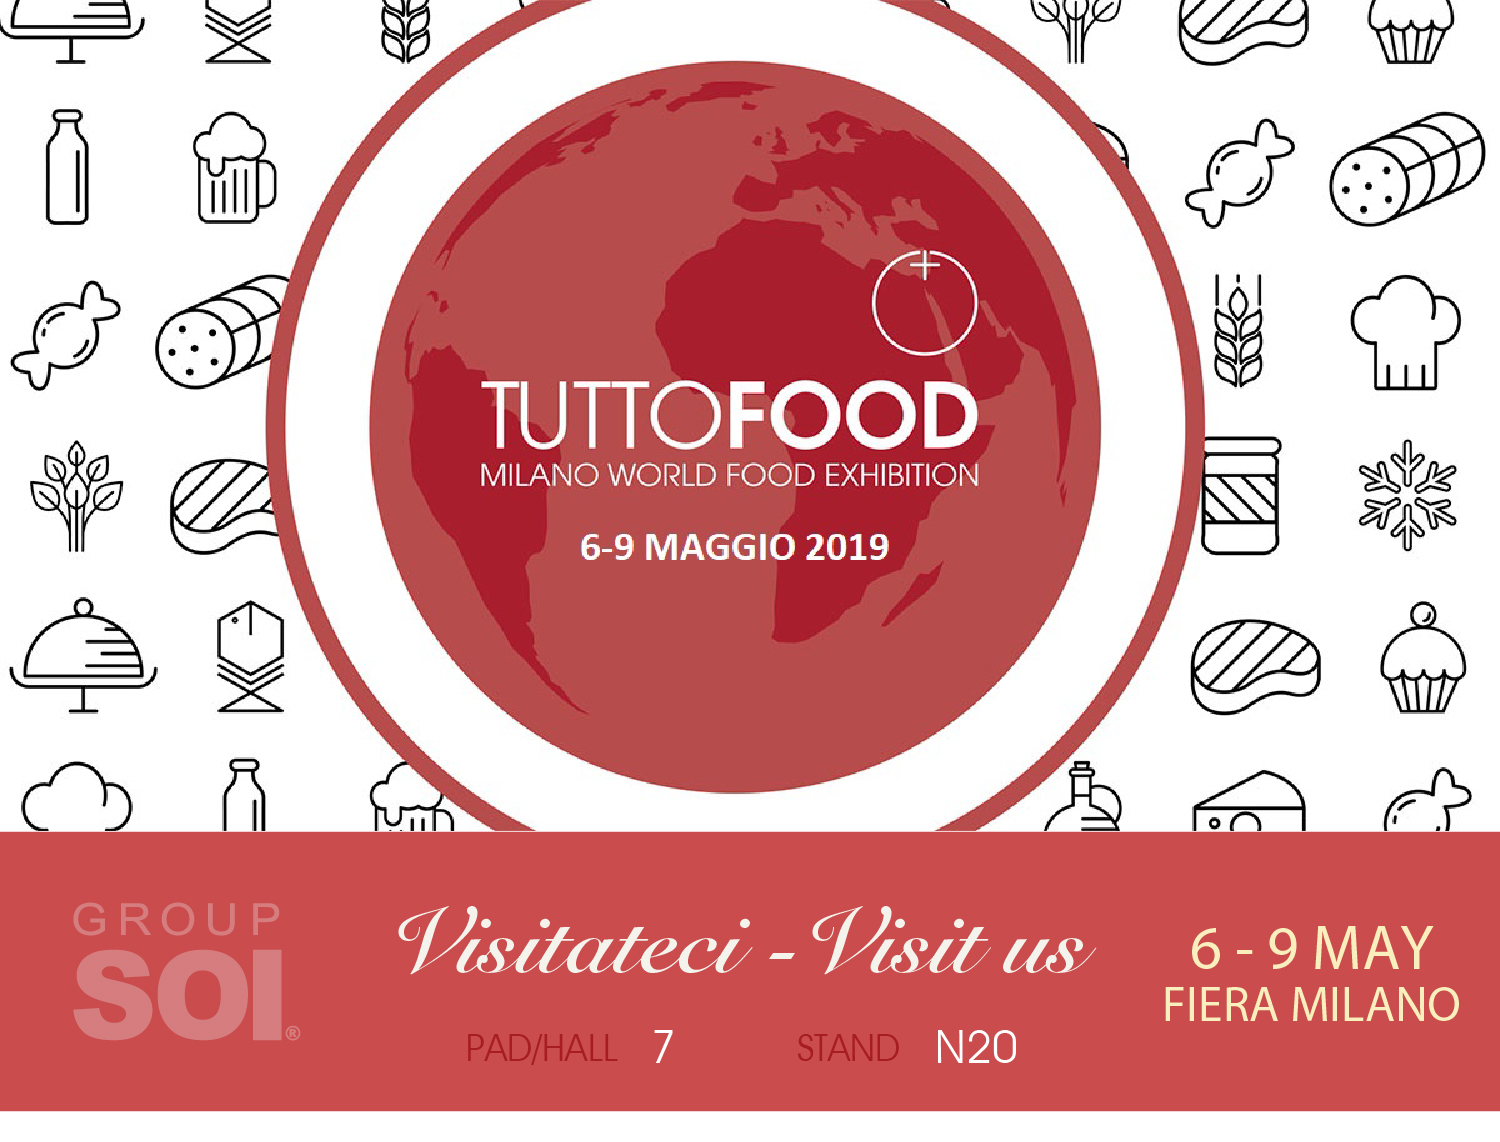 Soi So Group Soi At Tutto Food In Milan From 6 To 9 May 2019